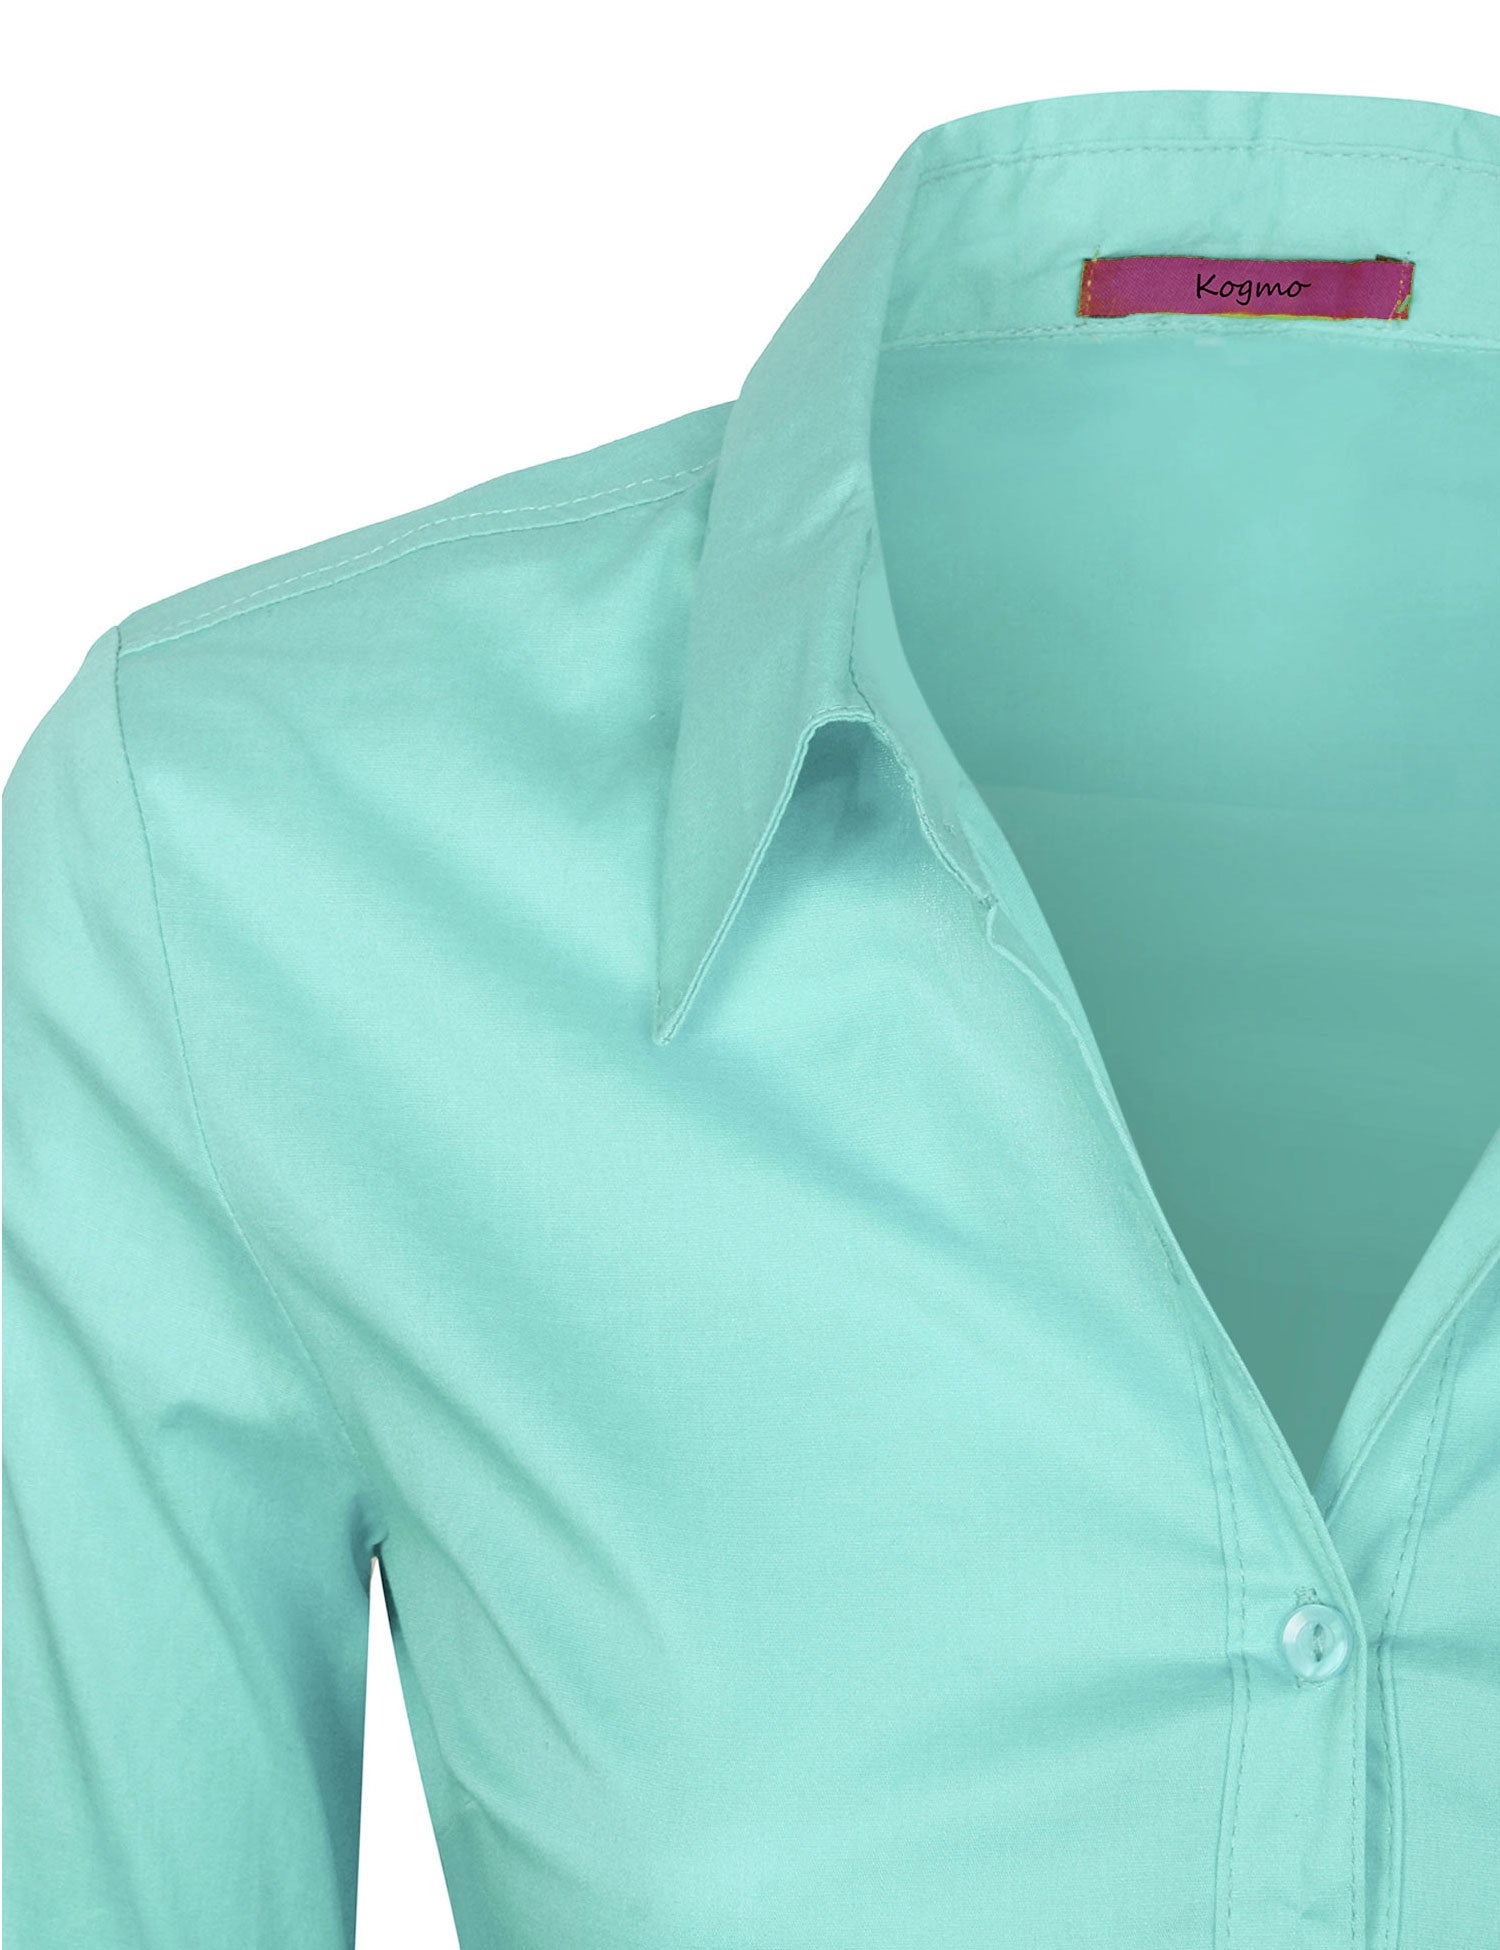 ae085768 ... Women's Solid Long Sleeve Button Down Office Blouse Dress Shirt (S-3X)  ...